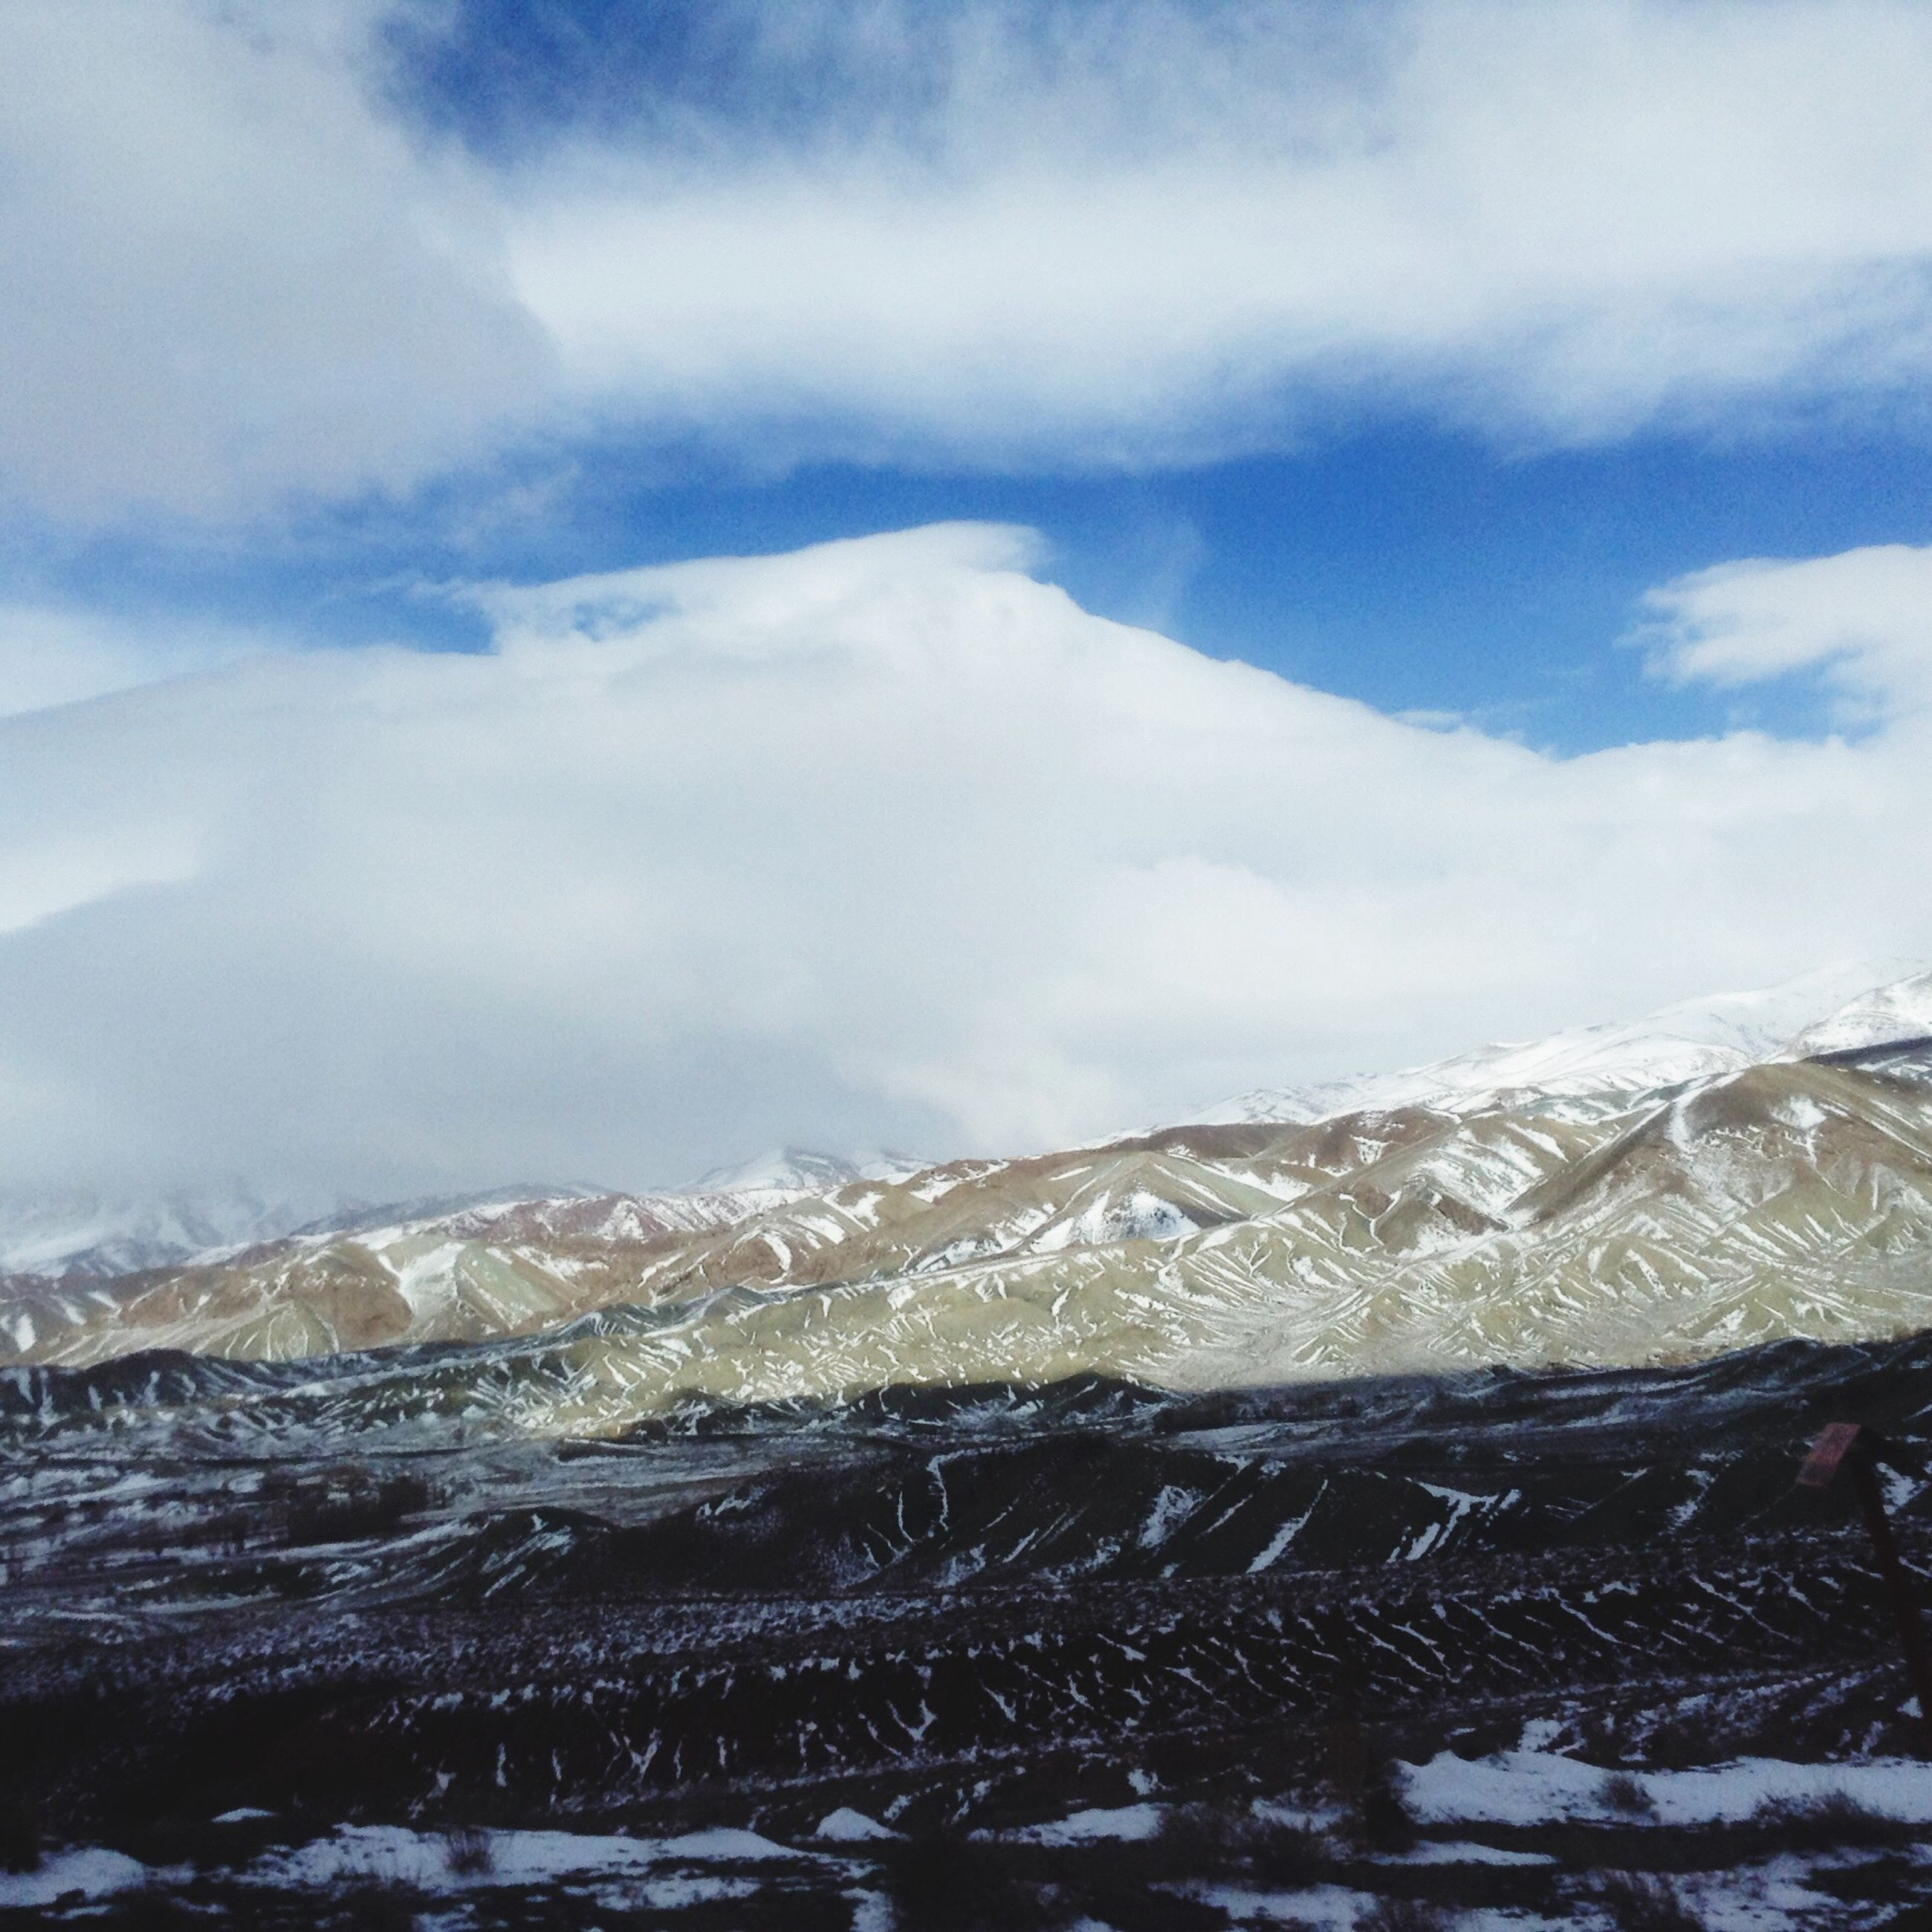 snow, winter, cold temperature, mountain, season, weather, snowcapped mountain, scenics, tranquil scene, covering, sky, mountain range, beauty in nature, tranquility, landscape, nature, frozen, cloud - sky, white color, snowcapped